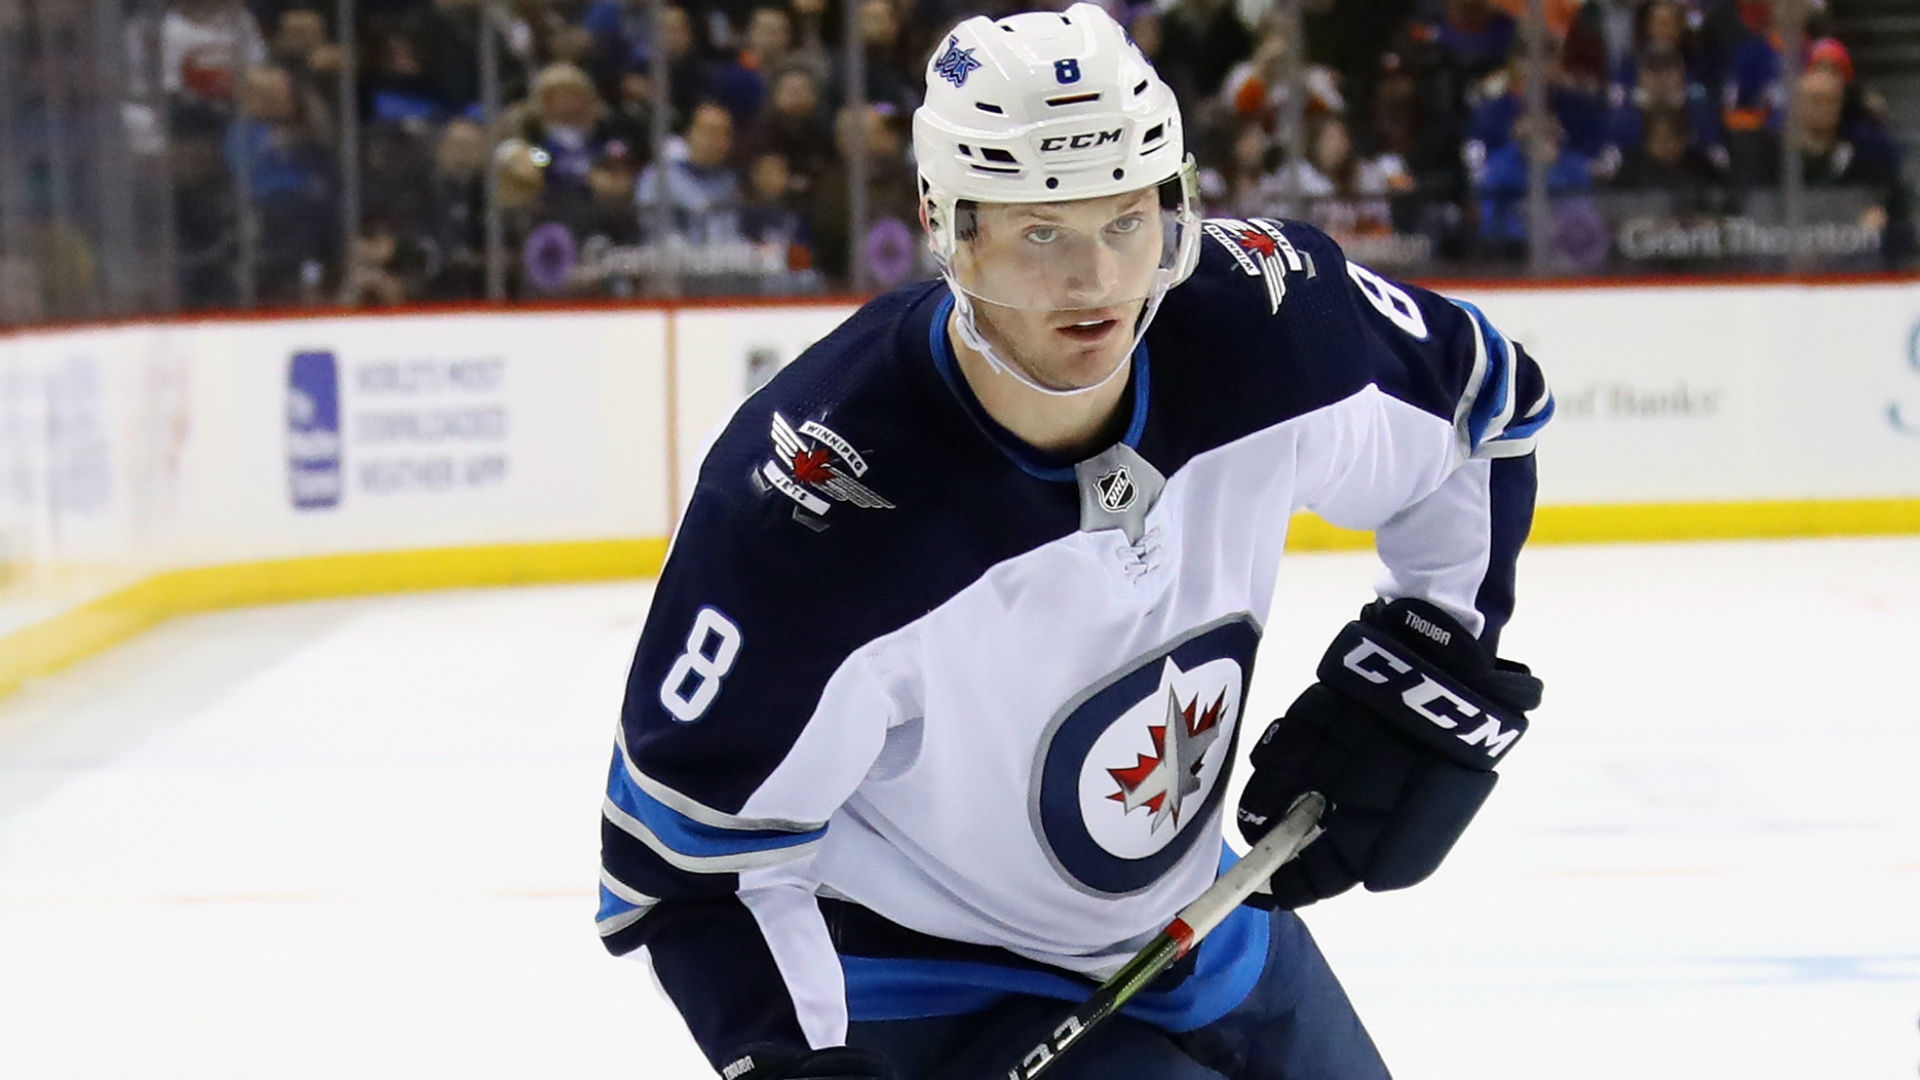 Jets lose Jacob Trouba for 6-to-8 weeks